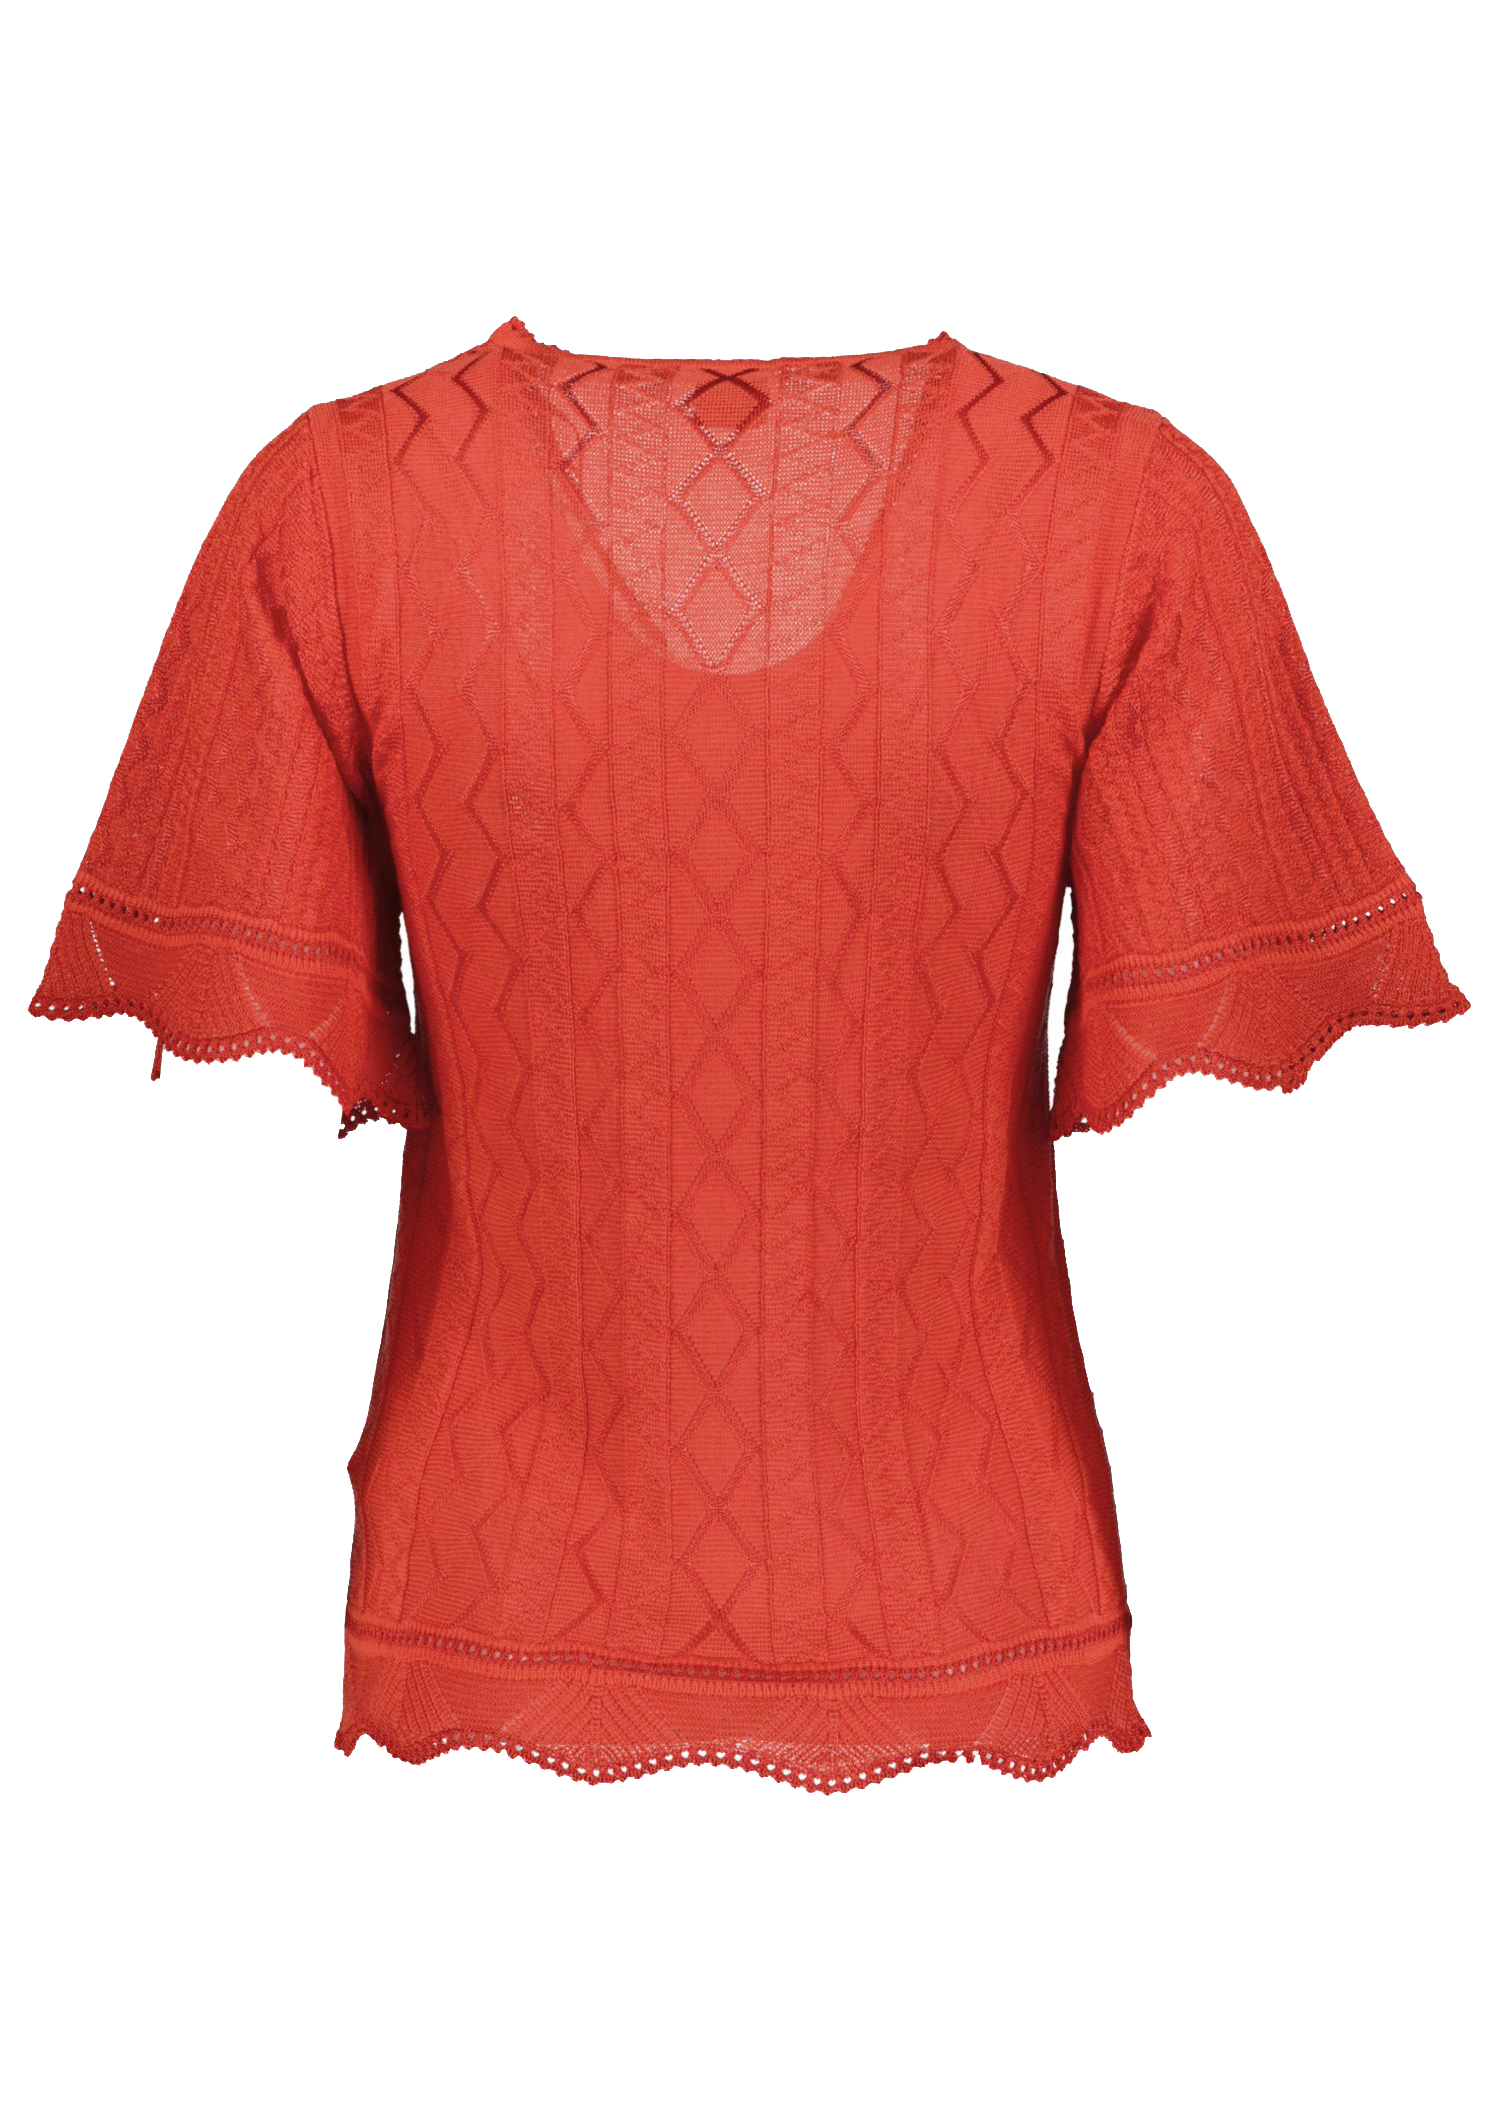 top red back _Front_M1500x15000JPG